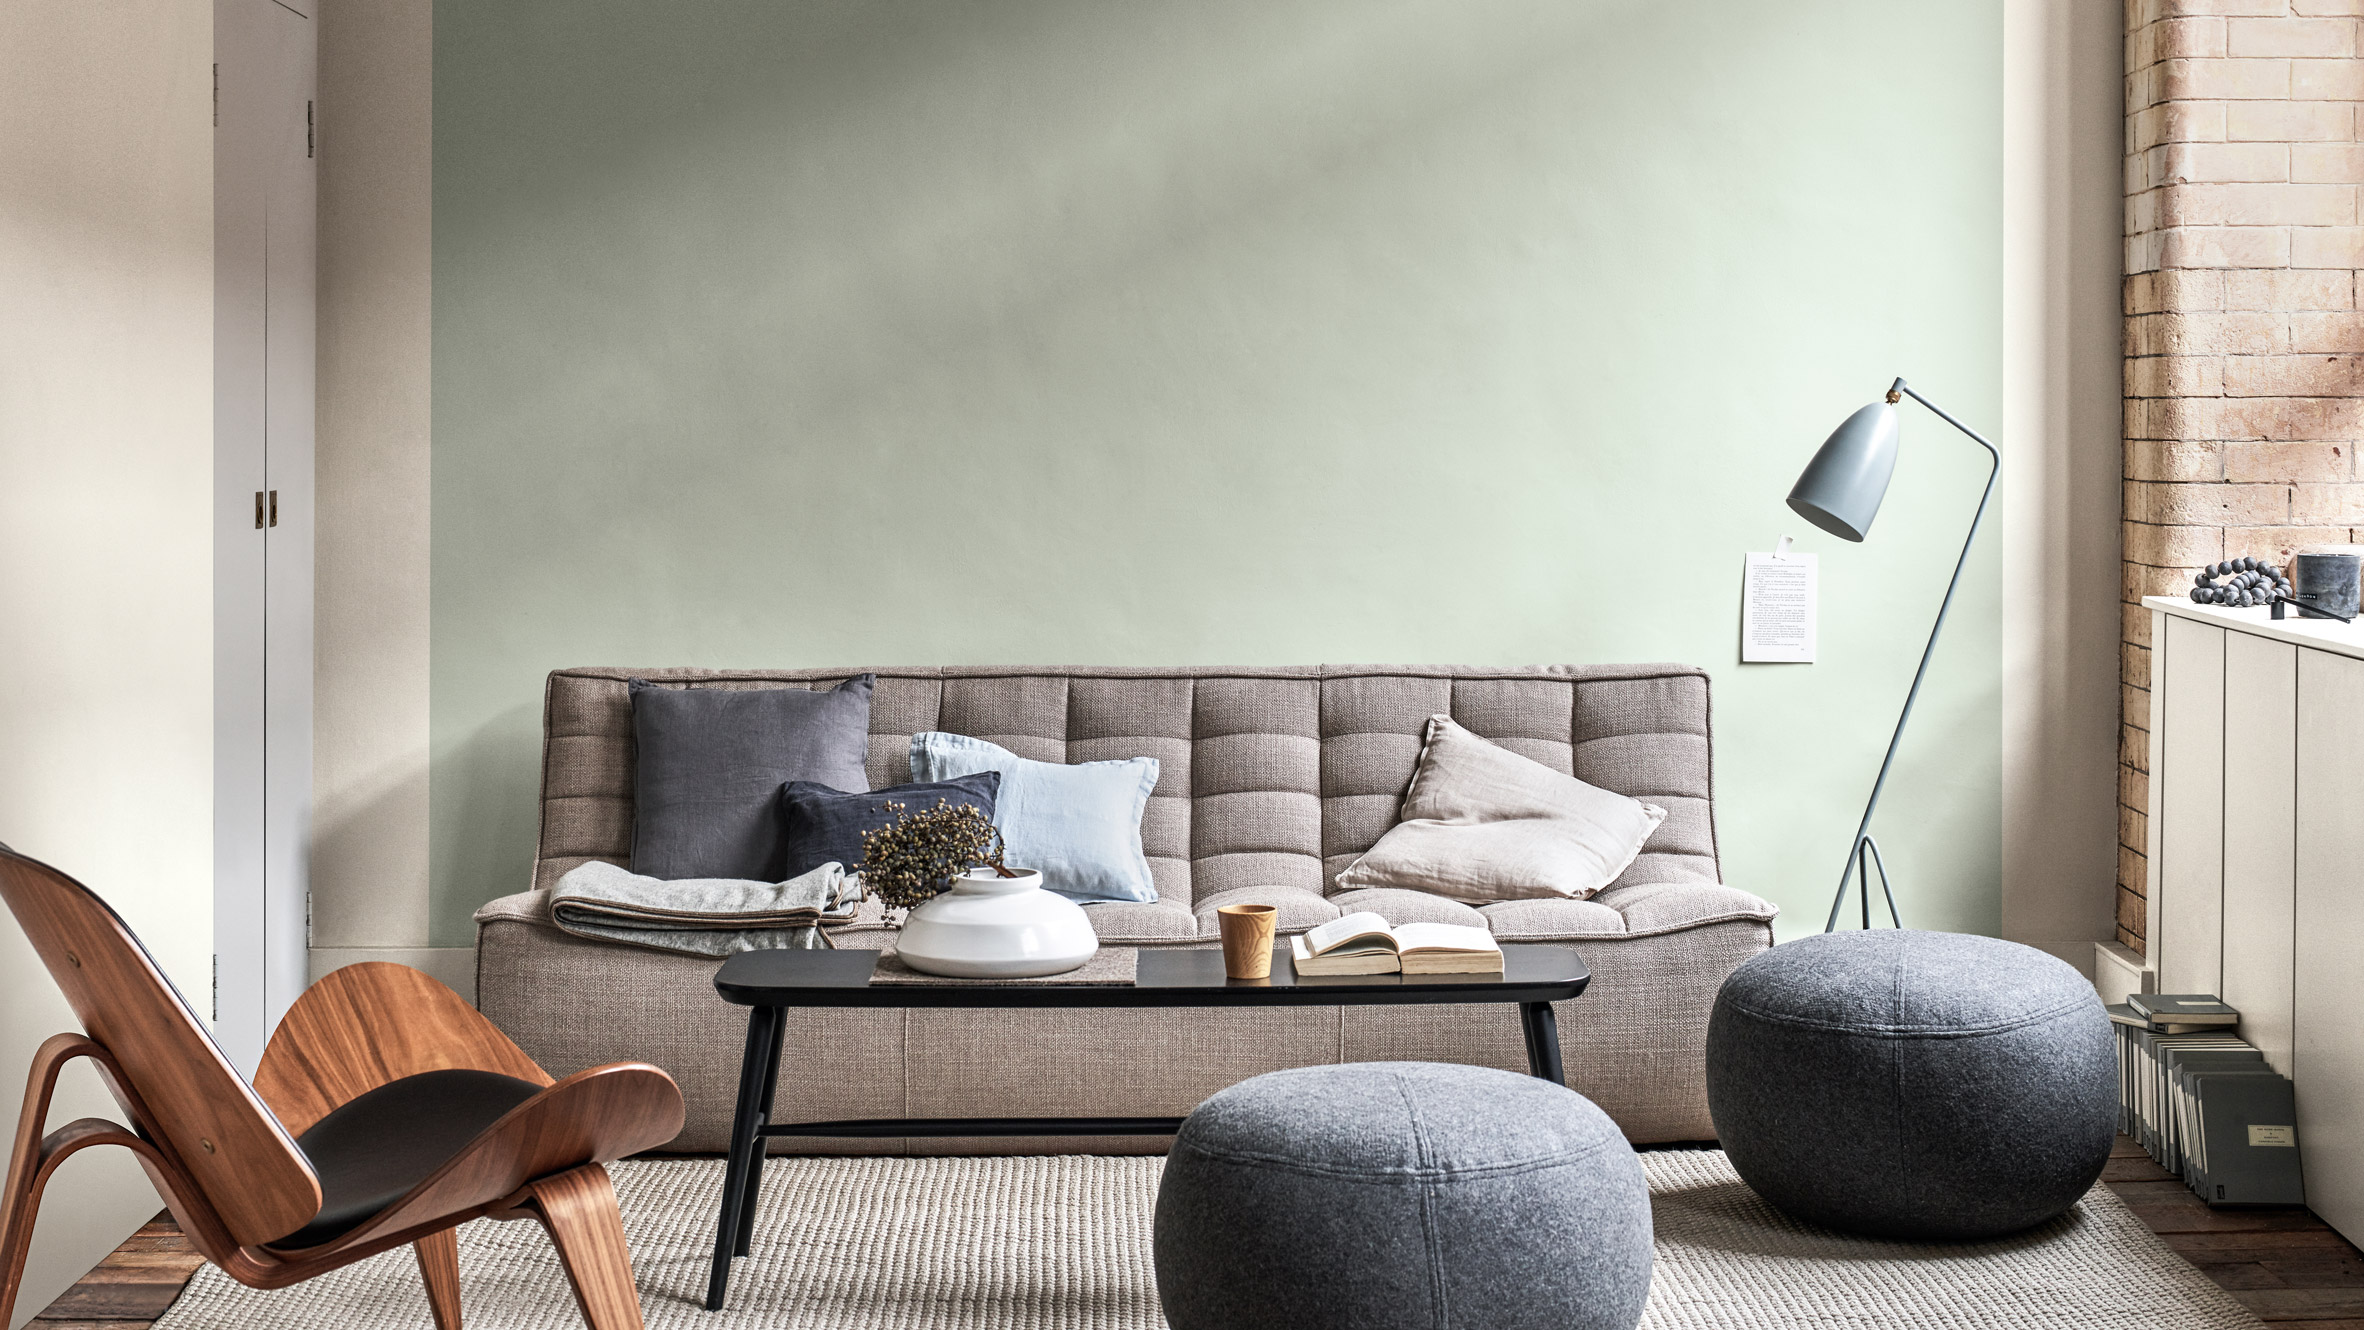 Best Interior Paint 2020.Dulux Names Tranquil Dawn As Colour Of The Year For 2020